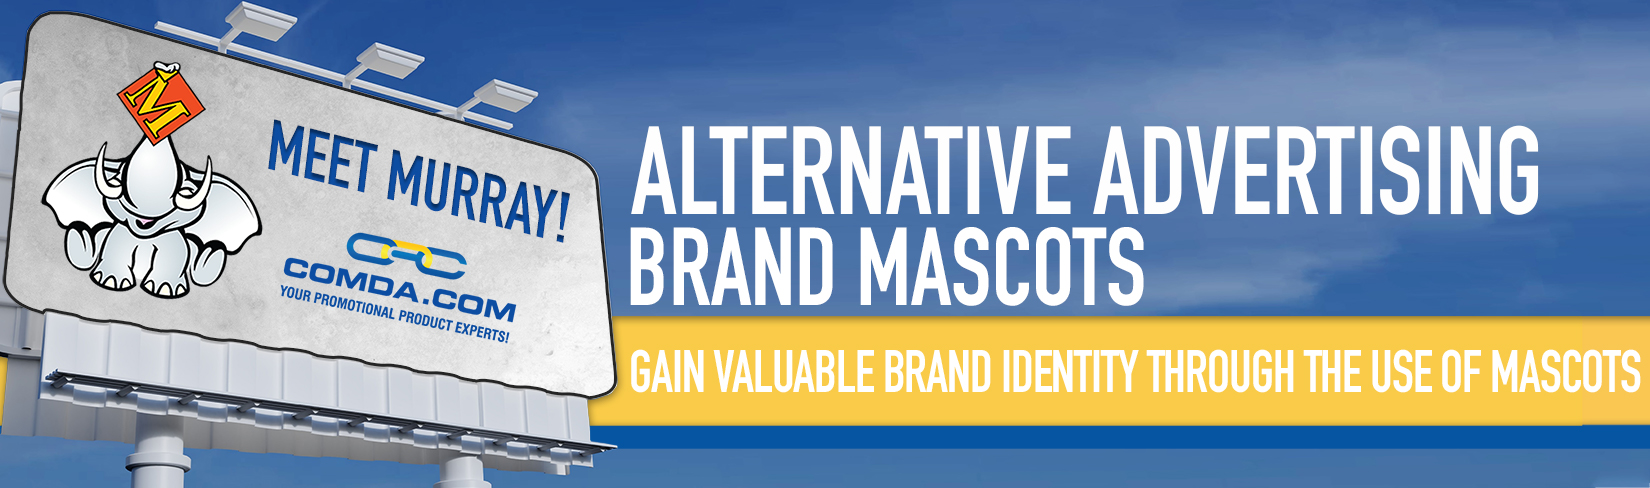 Alternative Advertising: Brand Mascots